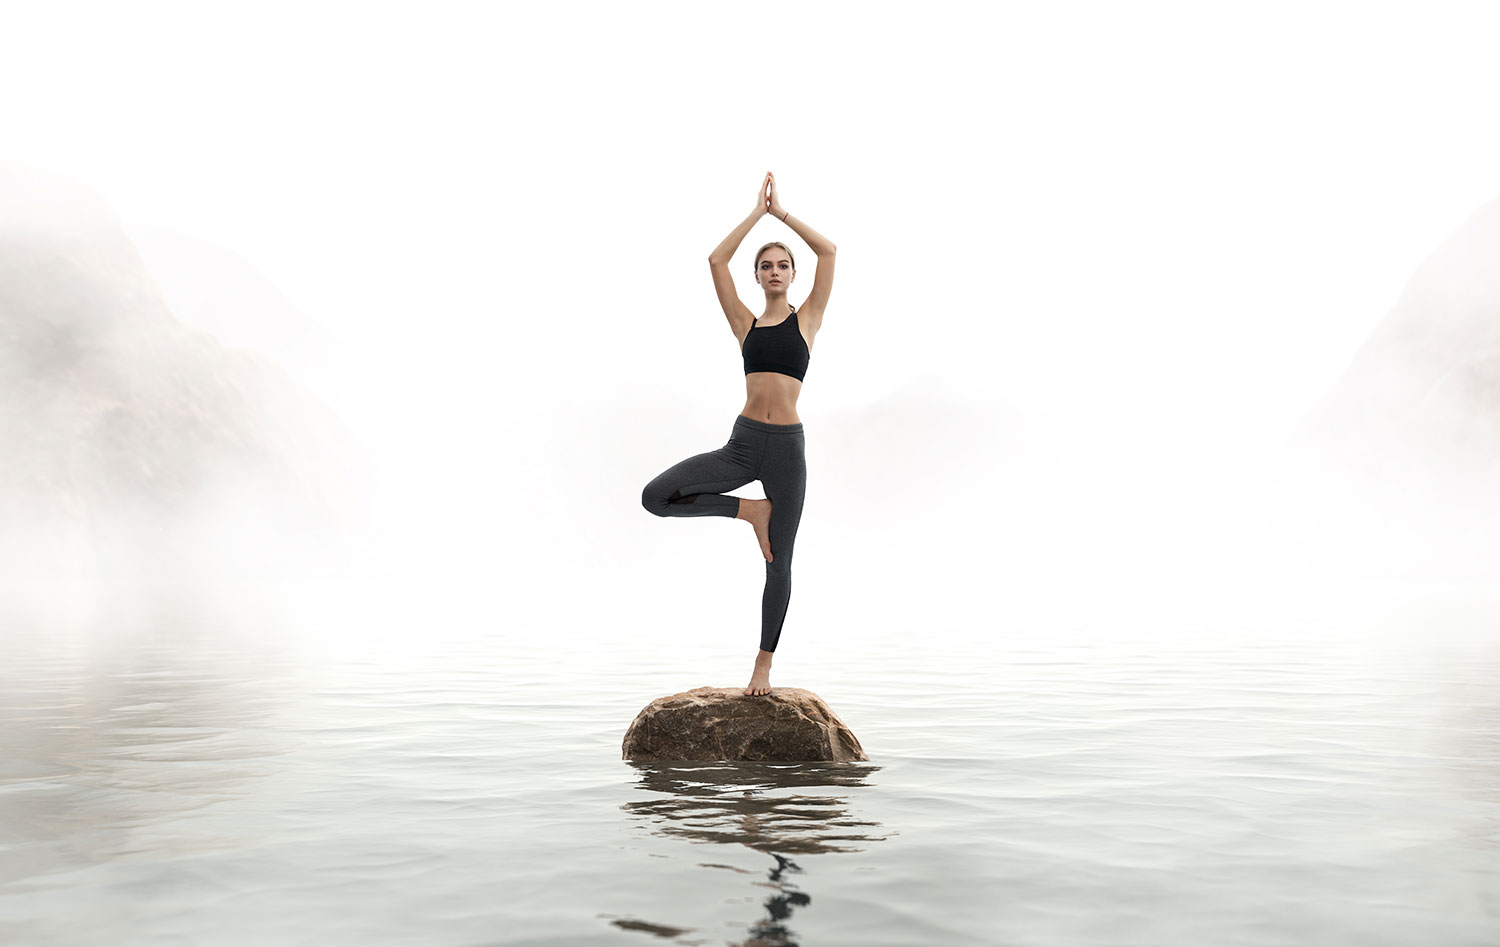 Top 10 Standing Poses in Yoga for Strength and Balance